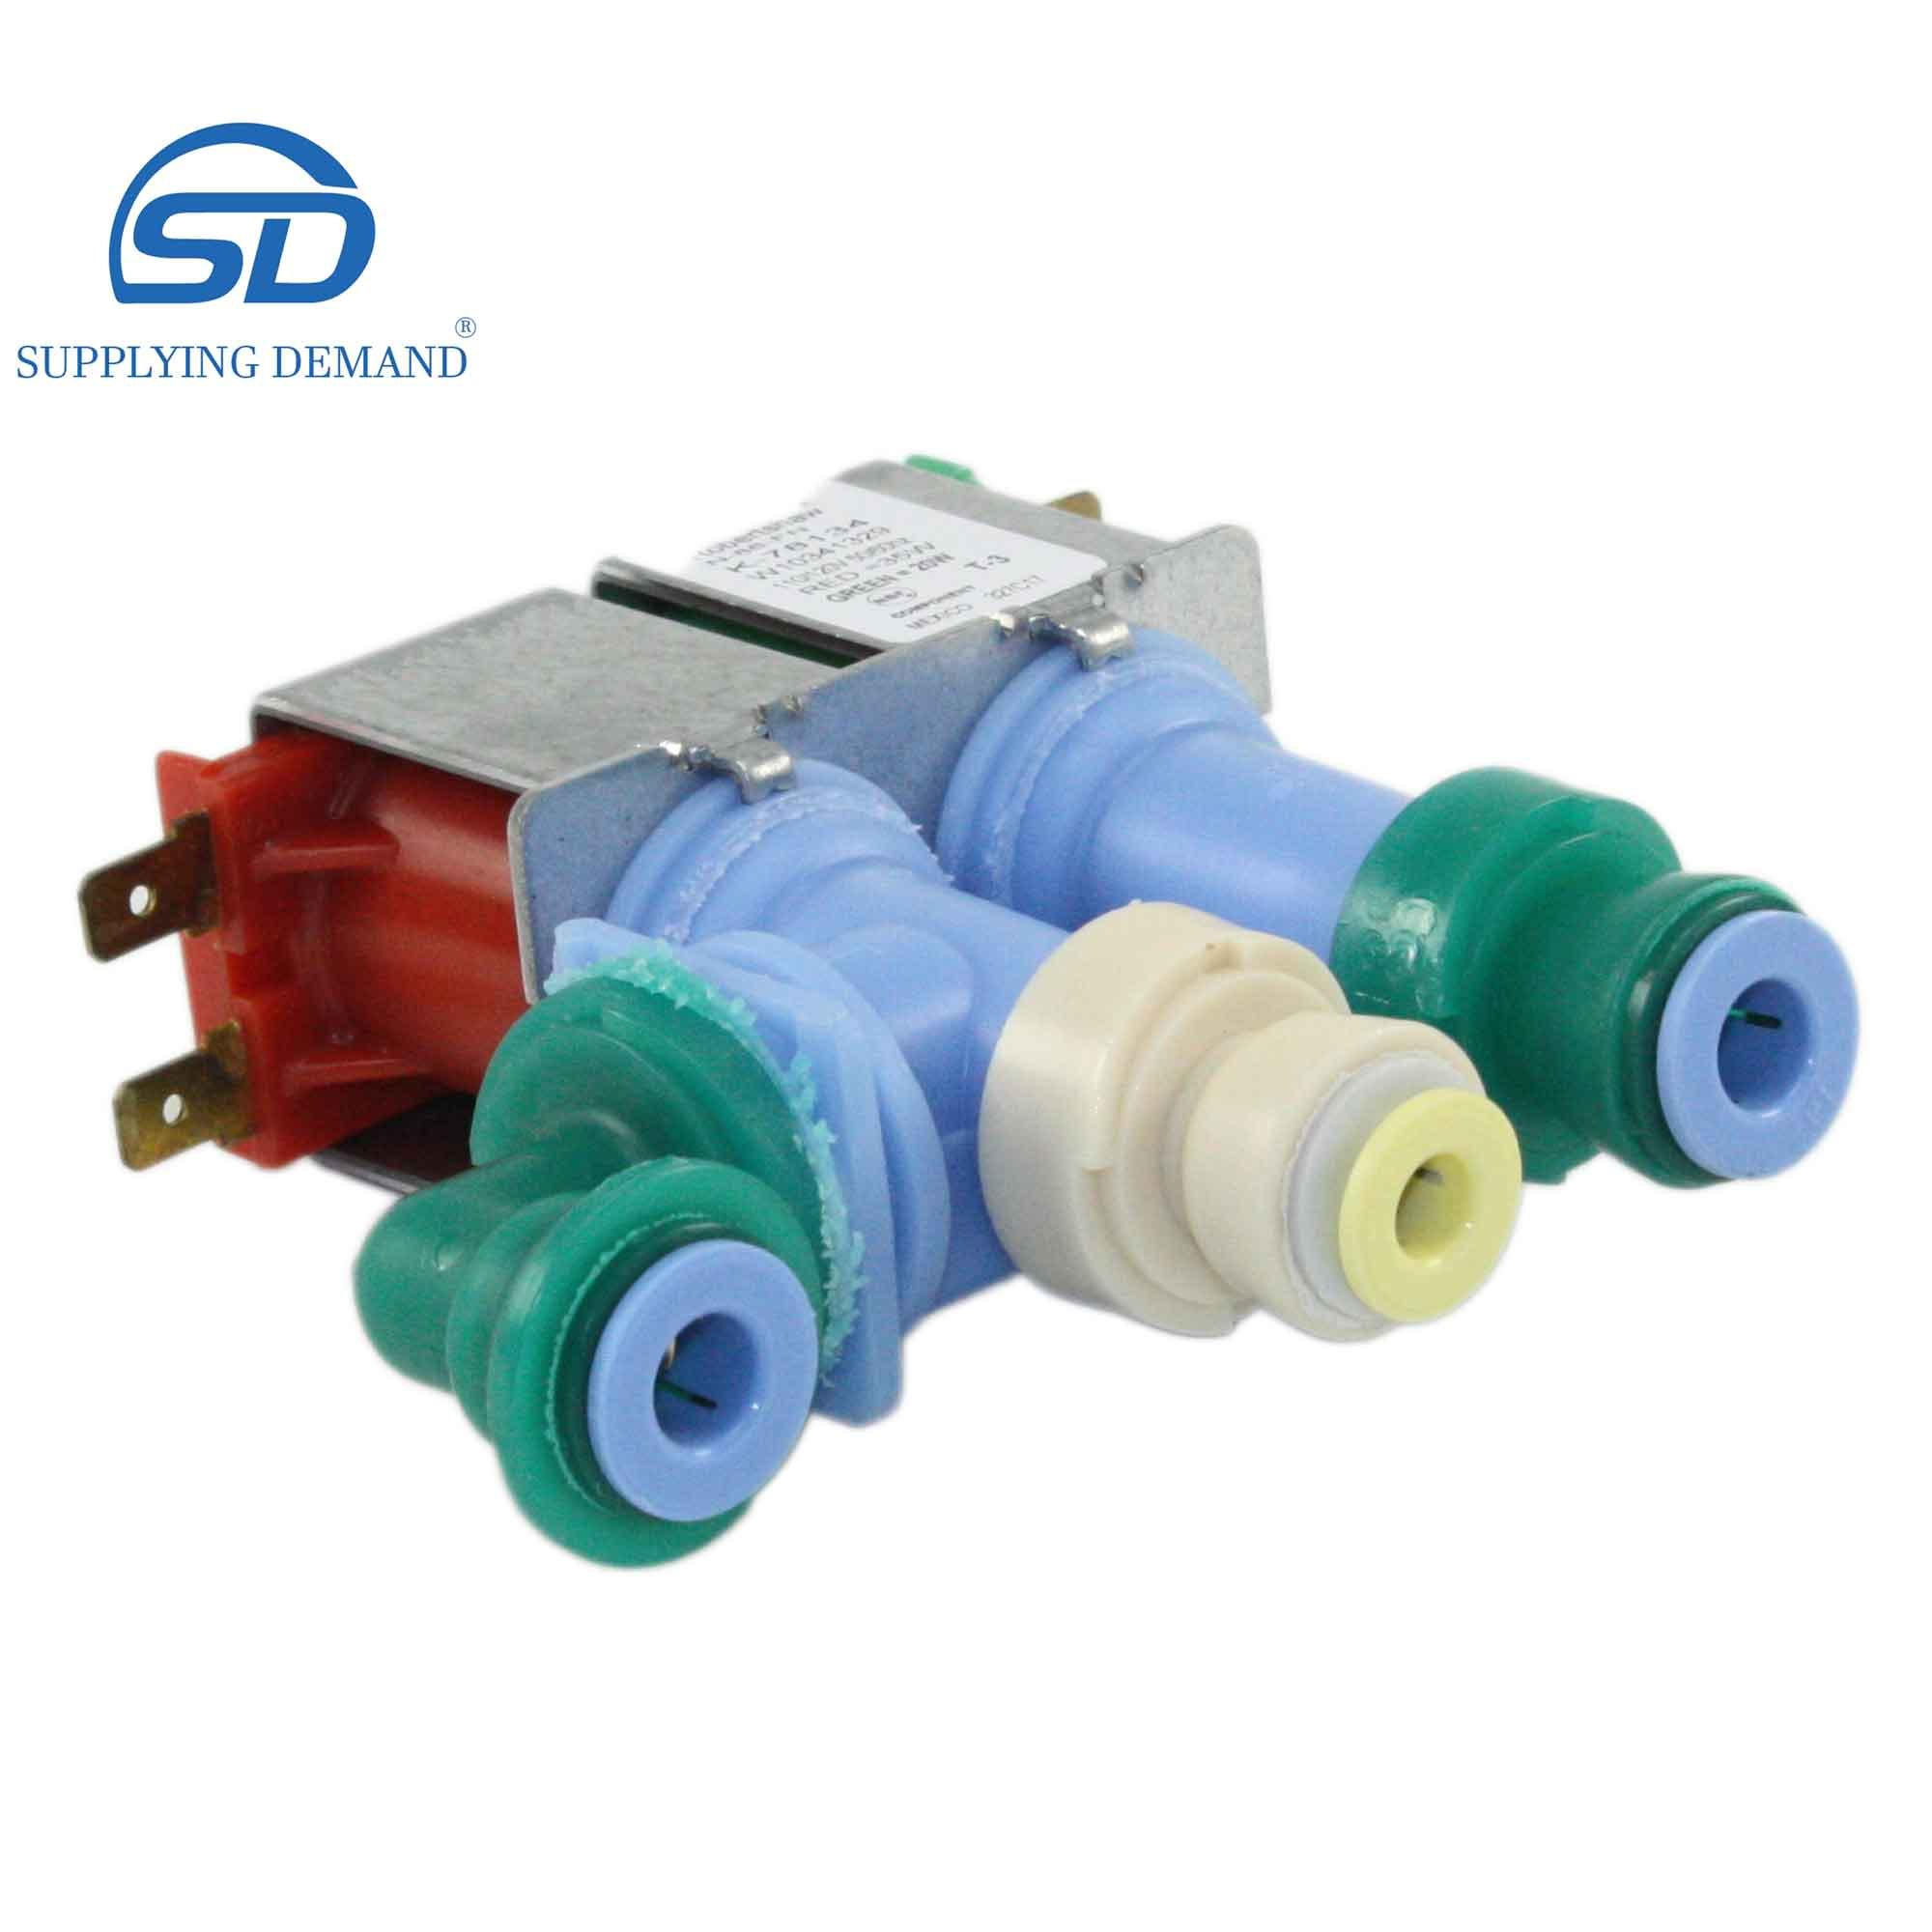 Supplying Demand W10341329 Refrigerator Dual Water Valve Works With AP6019940 by Supplying Demand (Image #3)